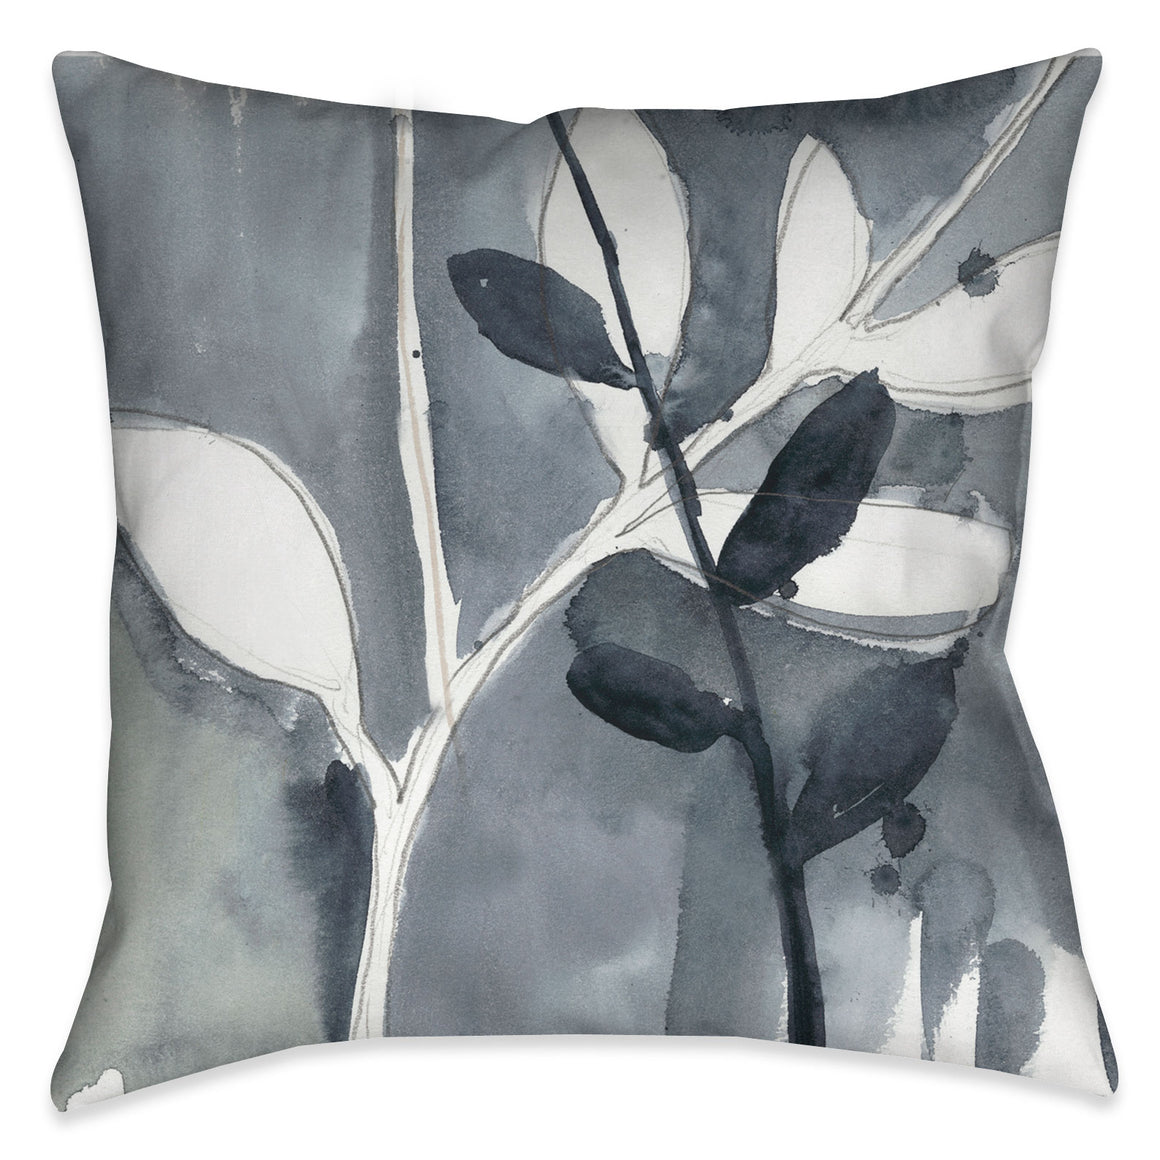 The neutral shades of gray tones in this decorative pillow would make a perfect addition to any contemporary bedroom or living room decor.